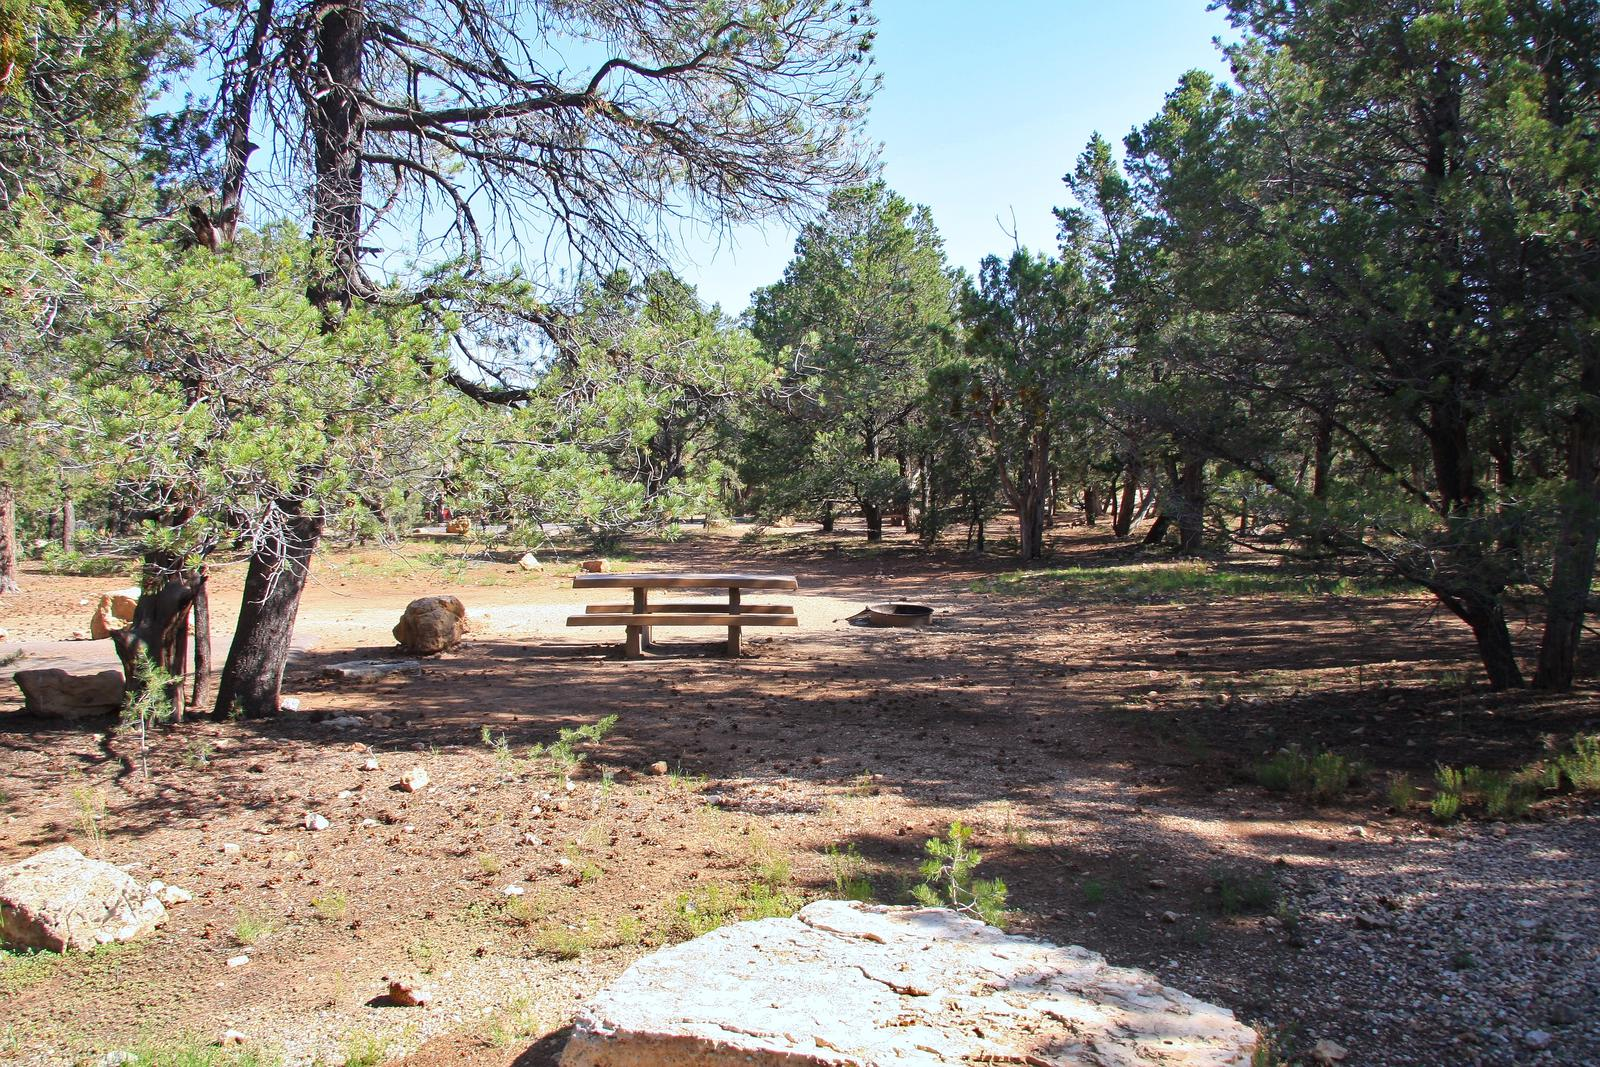 Picnic table, fire pit, and parking spot, Mather CampgroundPicnic table, fire pit, and parking spot for Maple Loop 186, Mather Campground